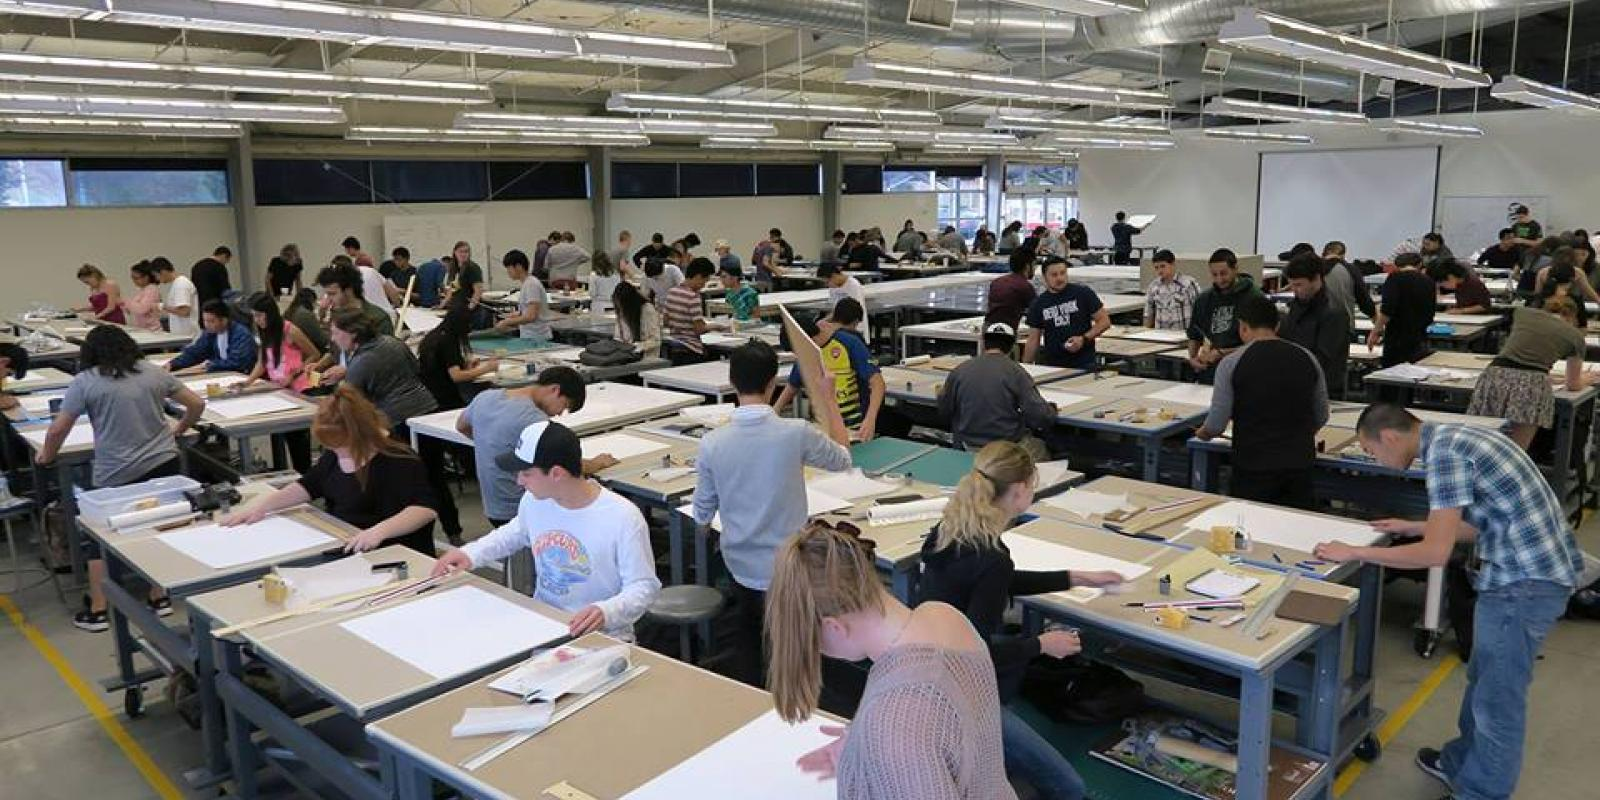 First year design students working in studio